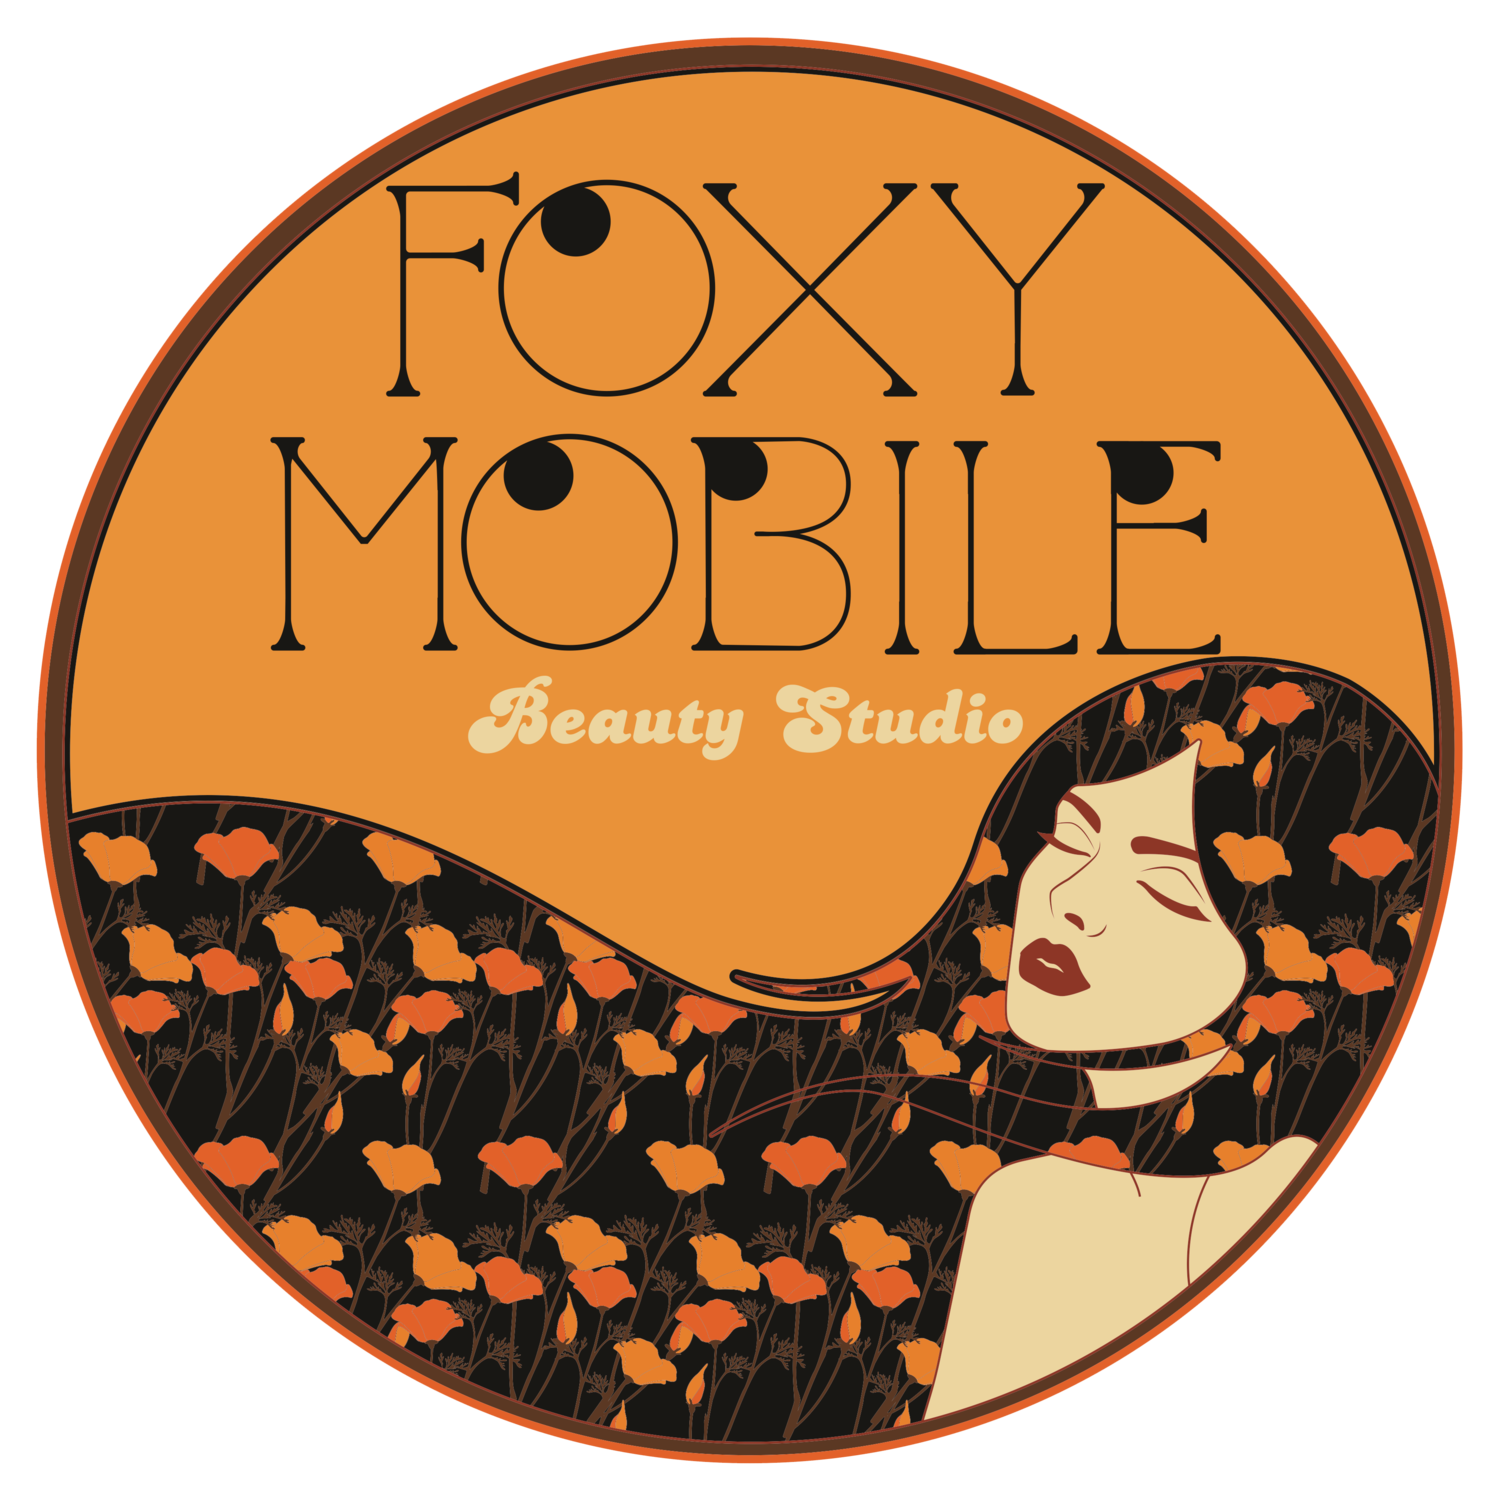 The Foxy Mobile